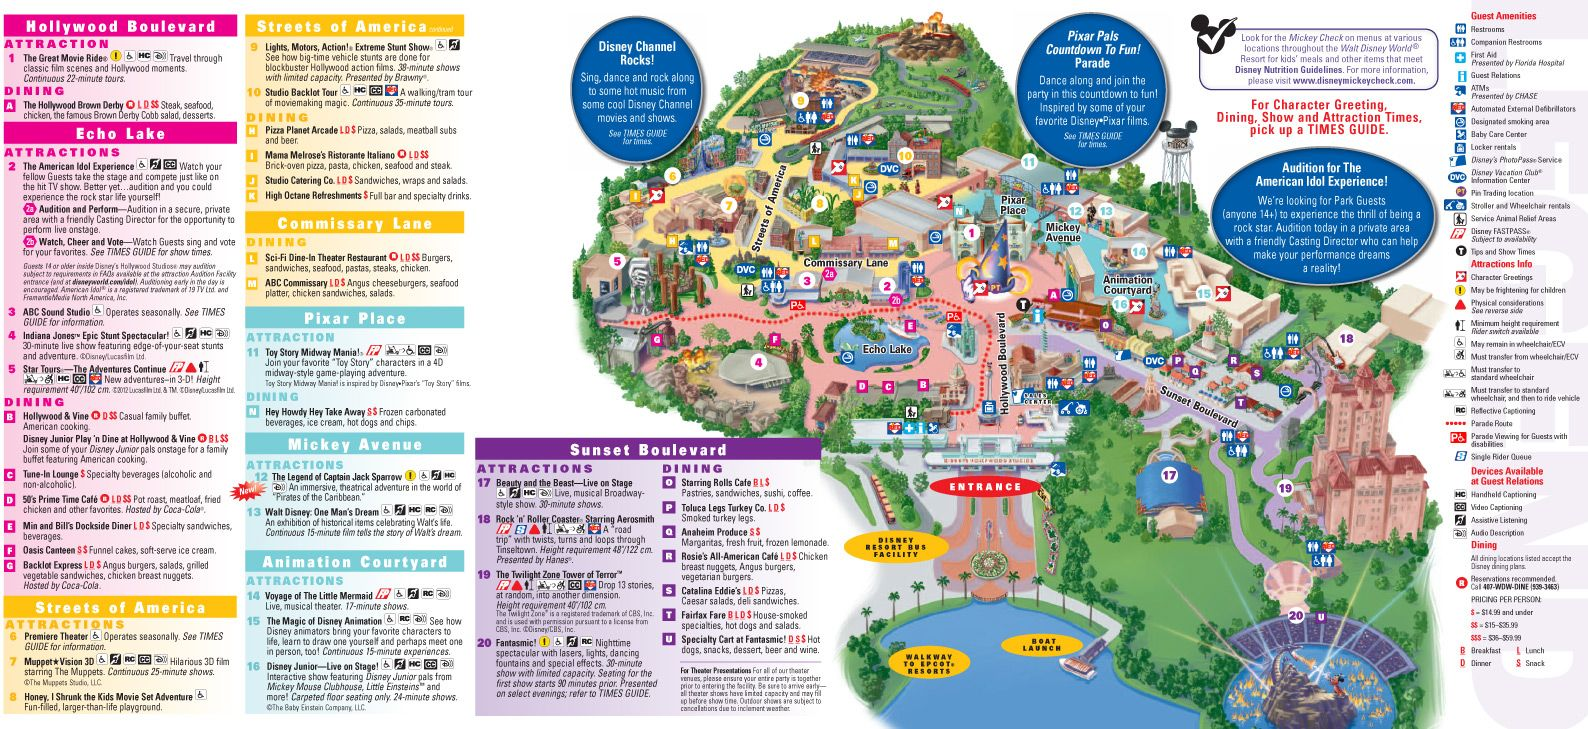 walt disney world map 2014 printable Walt Disney World Park and Resort Maps